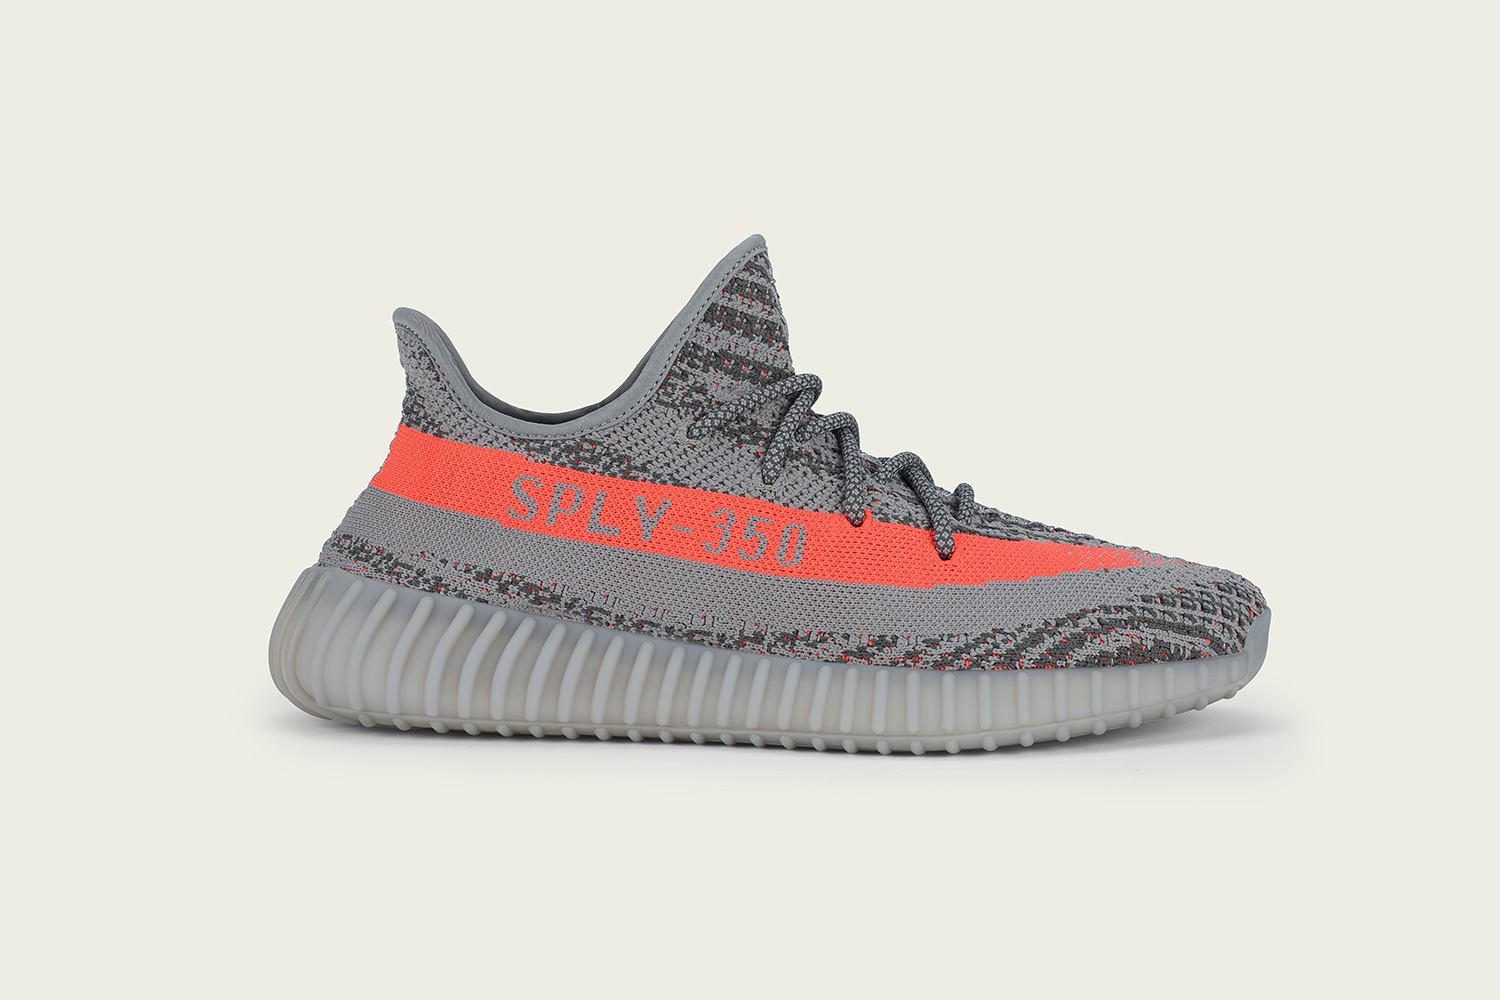 adidas Yeezy 350 Boost V2 Steel Grey